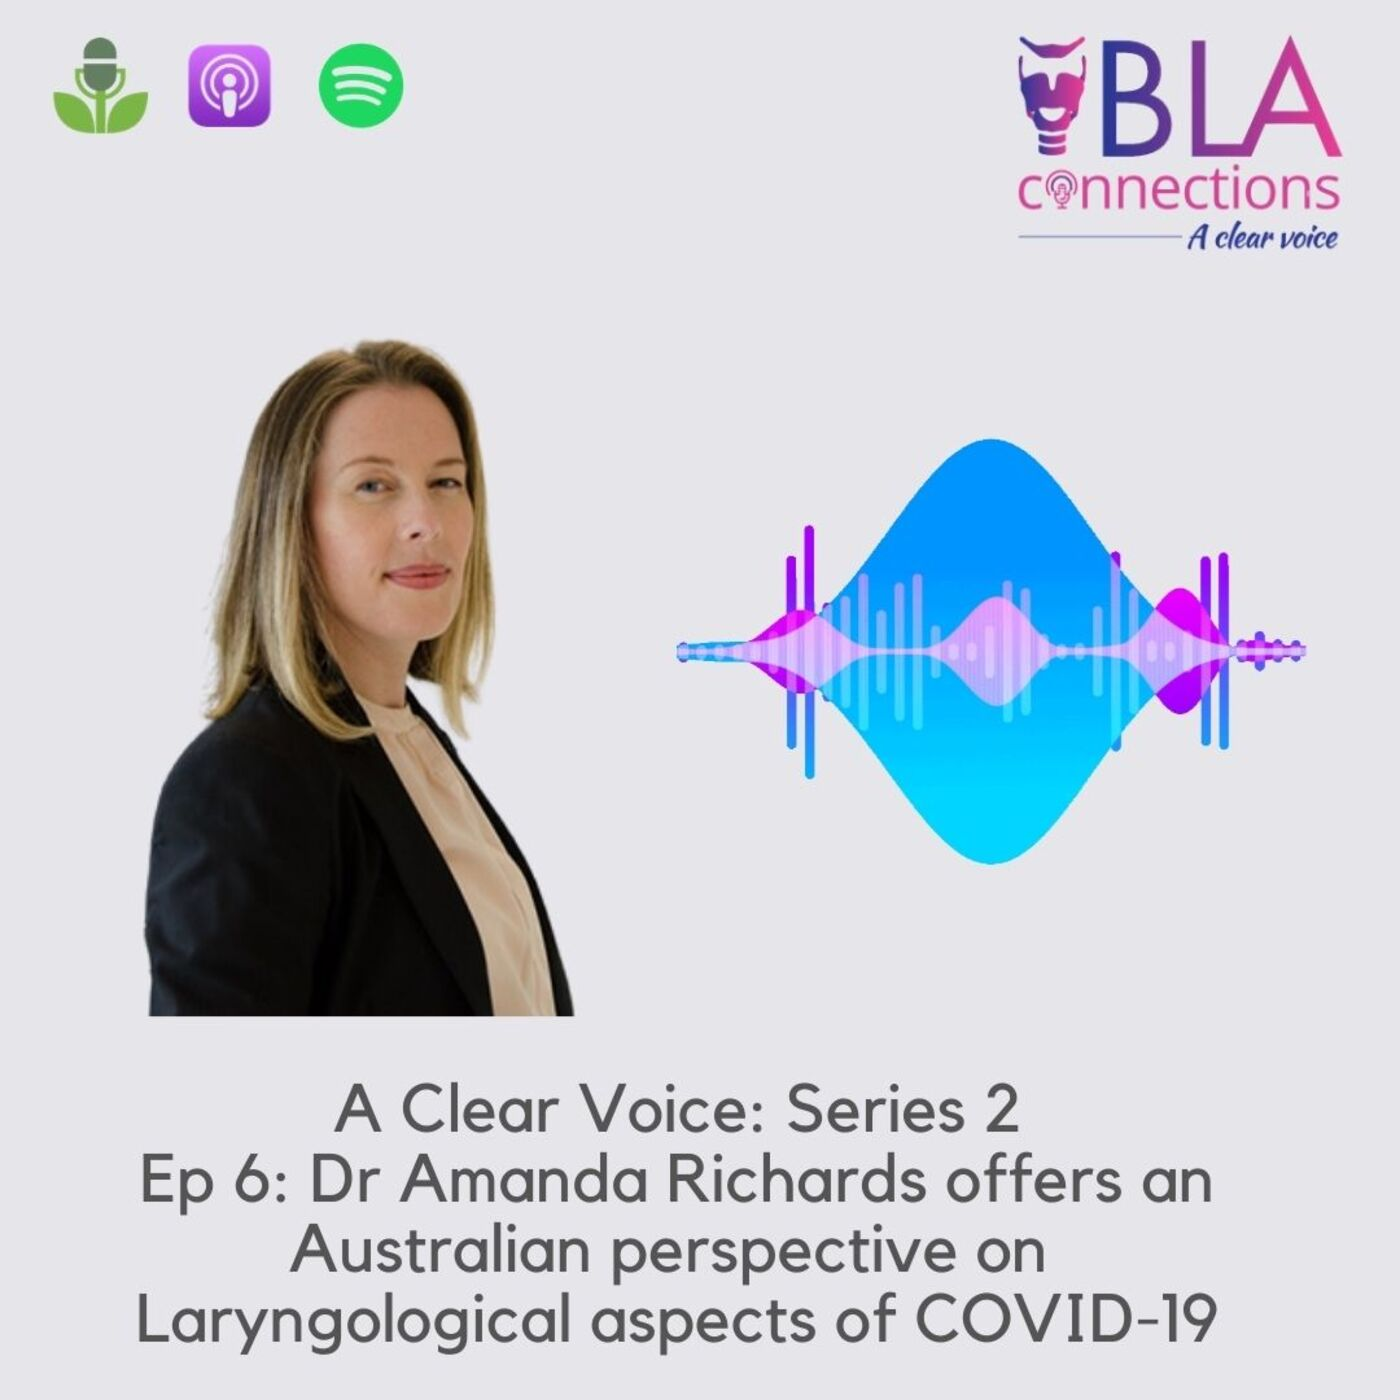 S2 Ep 6: Dr Amanda Richards offers an Australian perspective on Laryngological aspects of COVID-19